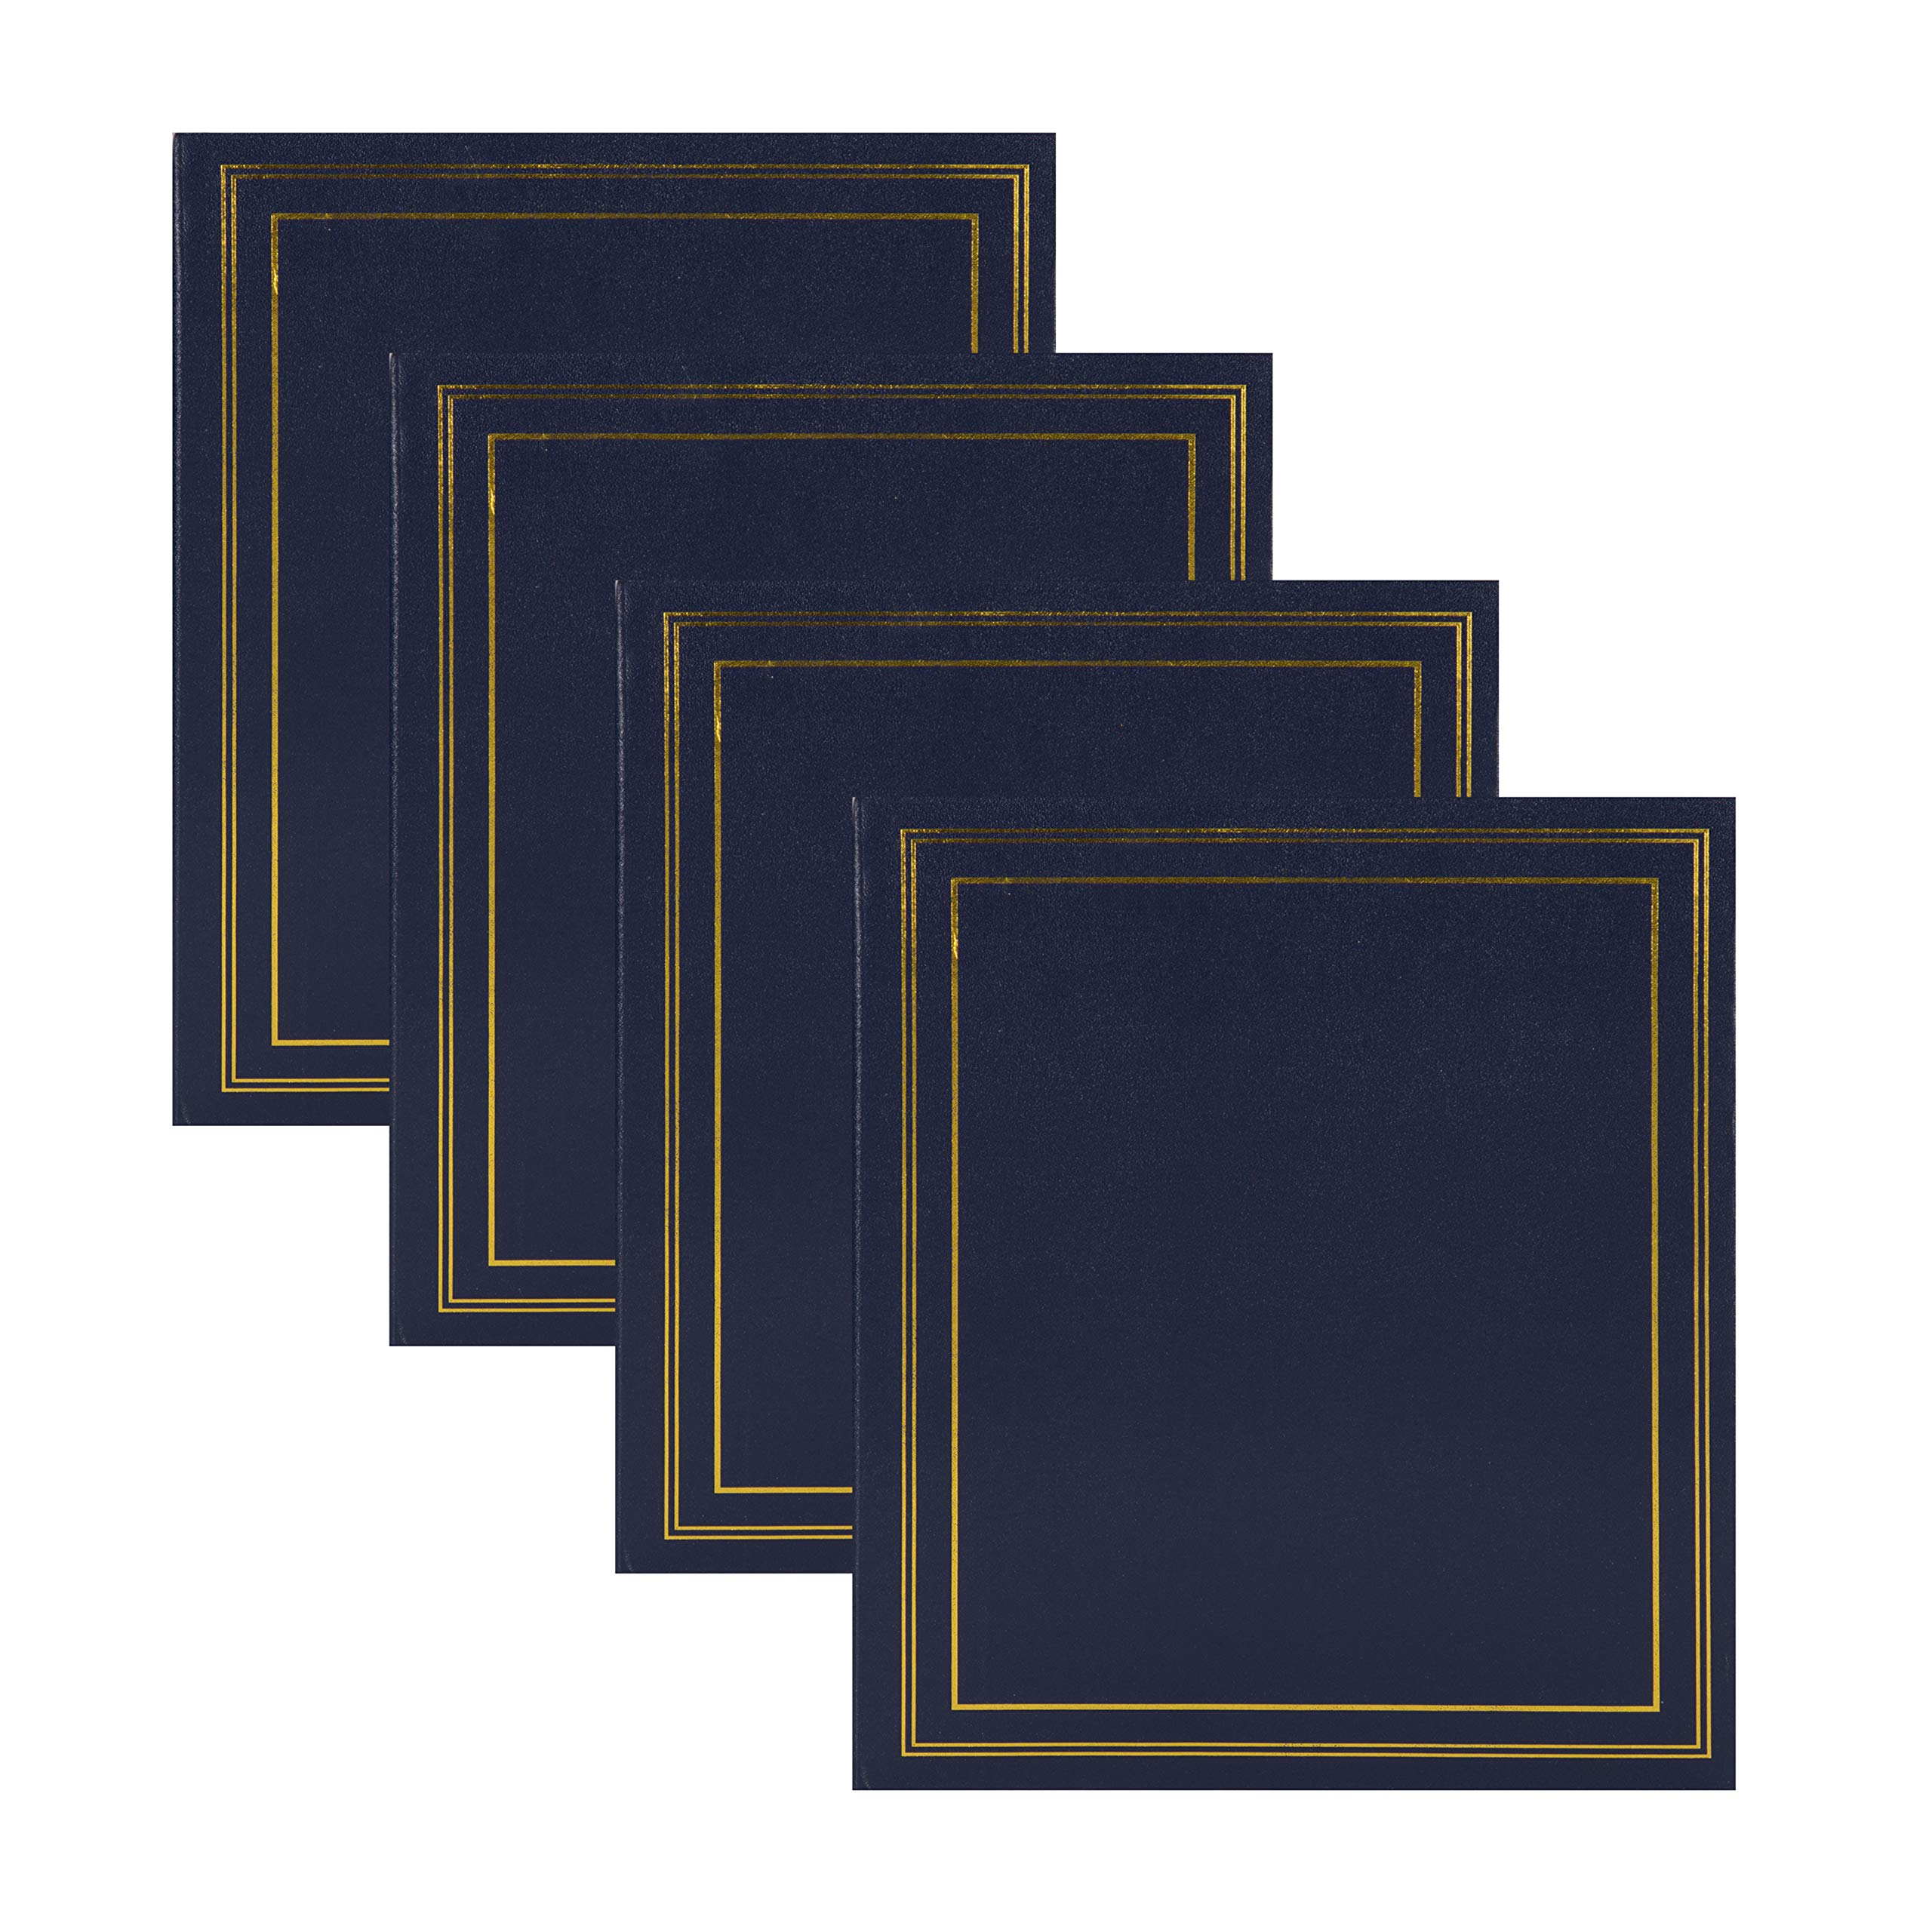 DesignOvation Traditional Photo Albums, Holds 440 4x6 Photos, Set of 4, Navy Blue